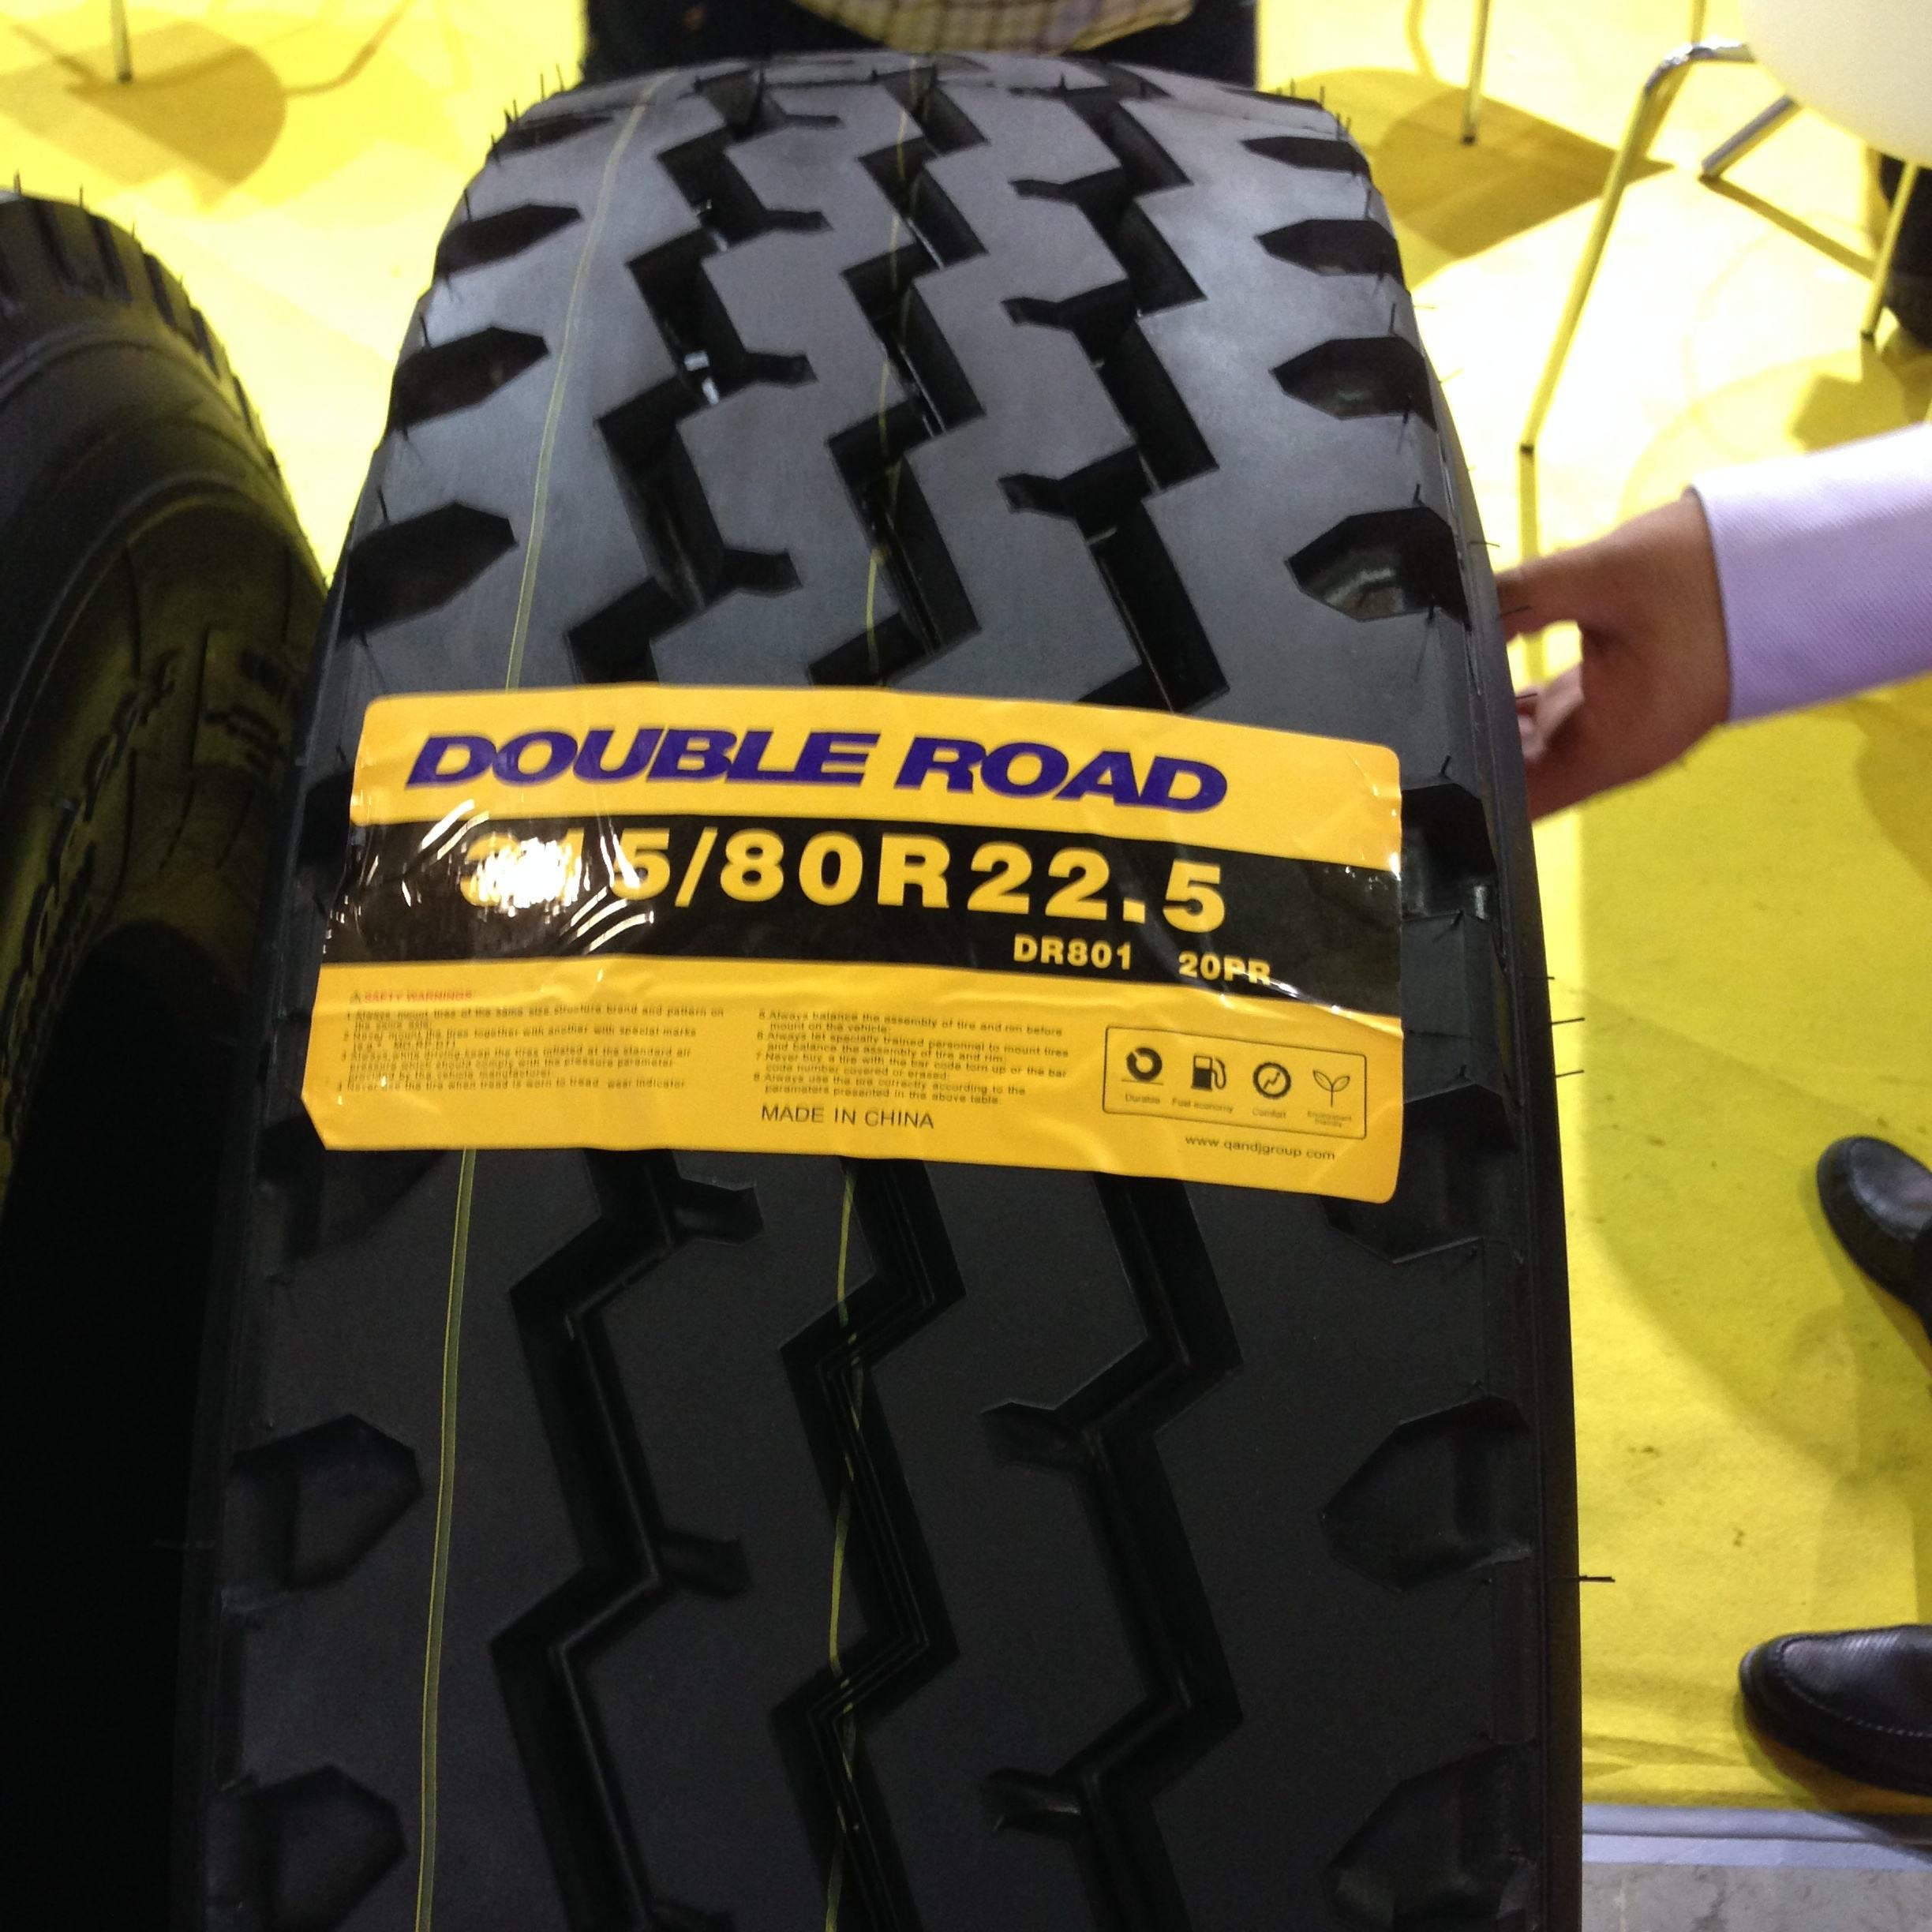 900r20 900r20 900/20 8.25x20 commercial truck tires 8.25r16 8.25 16 radial truck tires prices